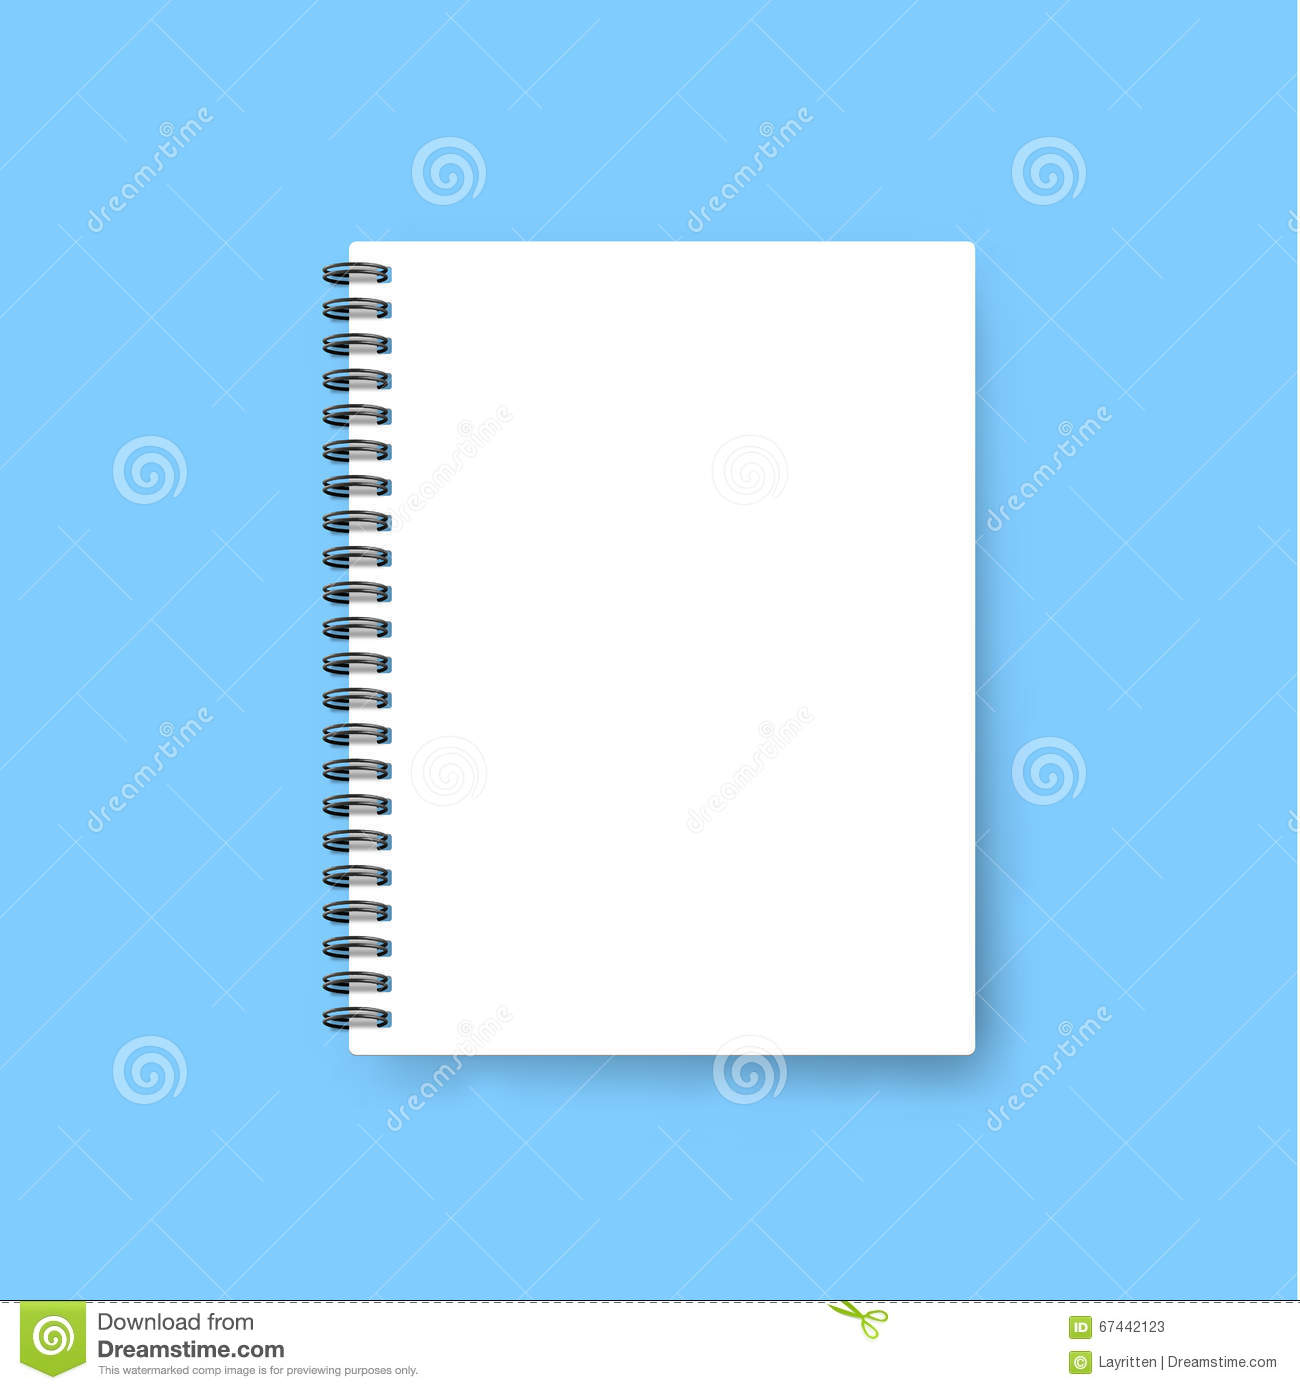 Notebook Cover Template ~ Realistic notebook template blank cover design mock up